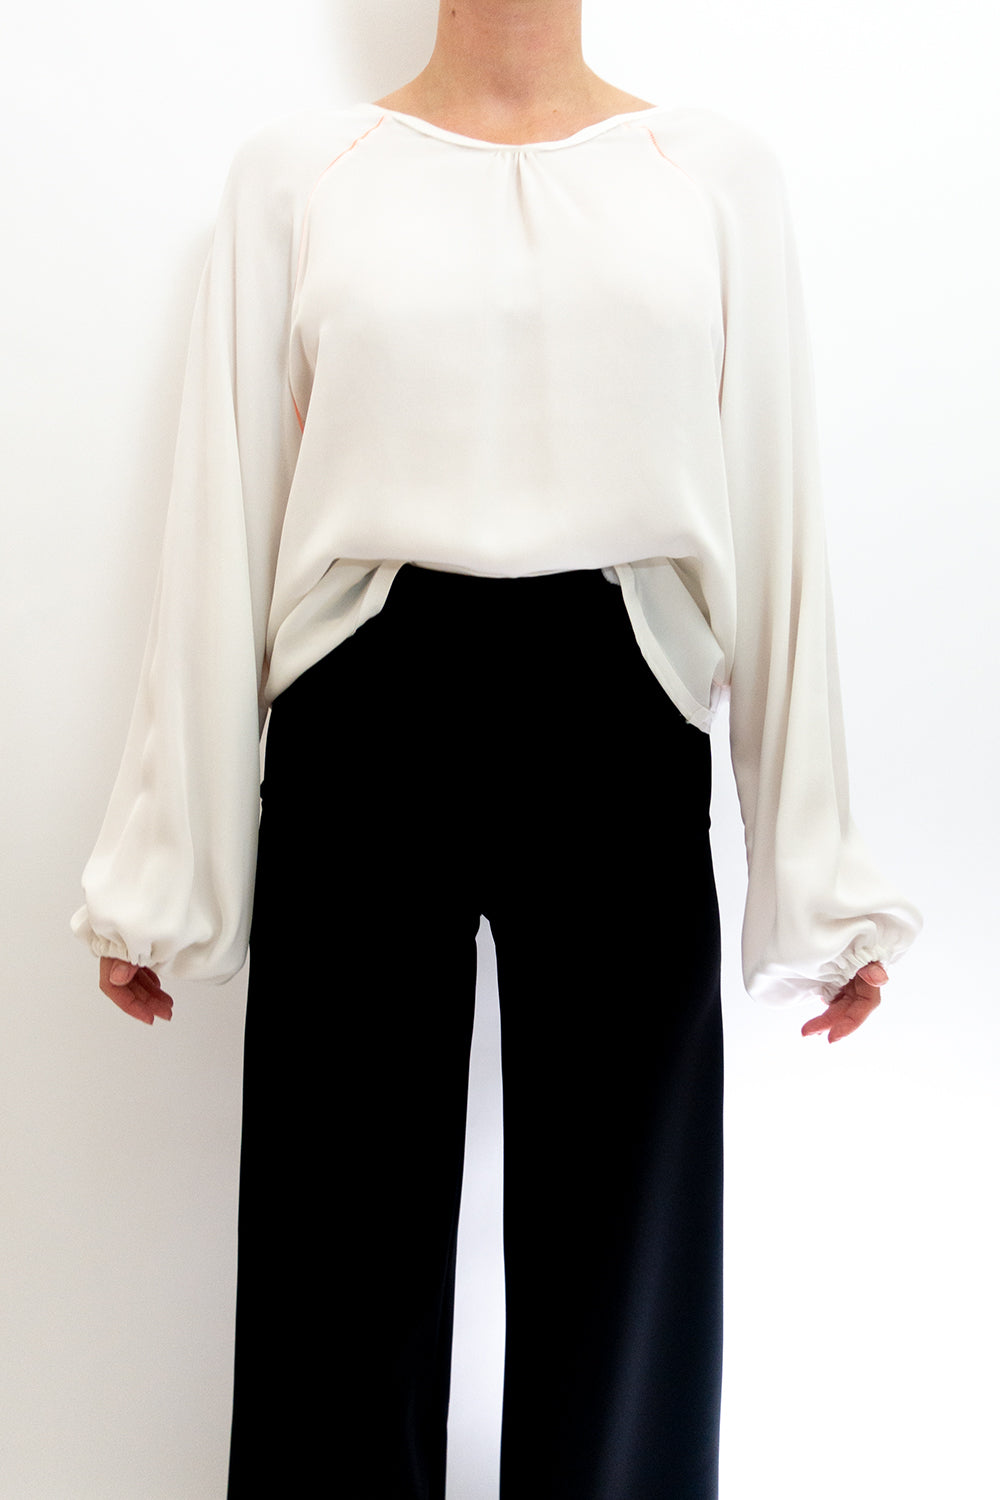 BAZ INC. - White Blouse - Australian Fashion and Accessories Boutique - Faid Store